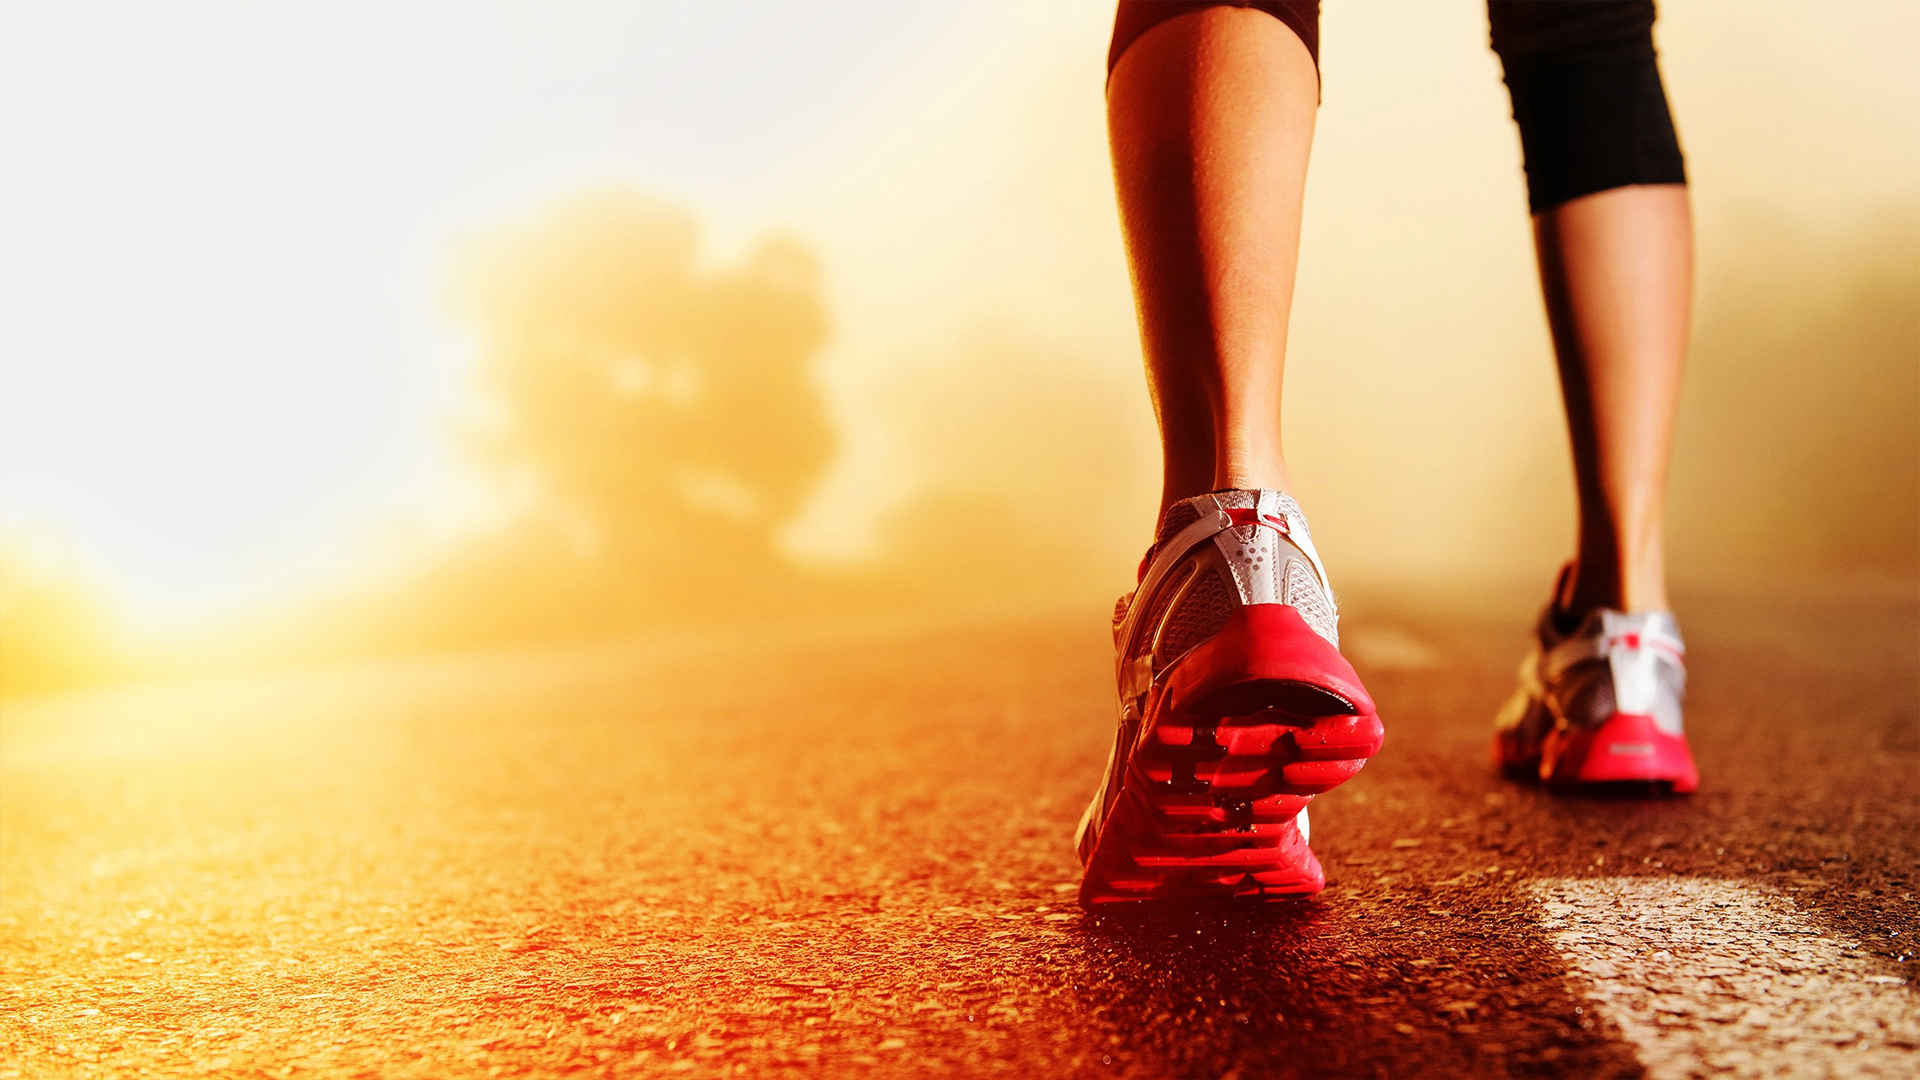 Running-Backgrounds-HD